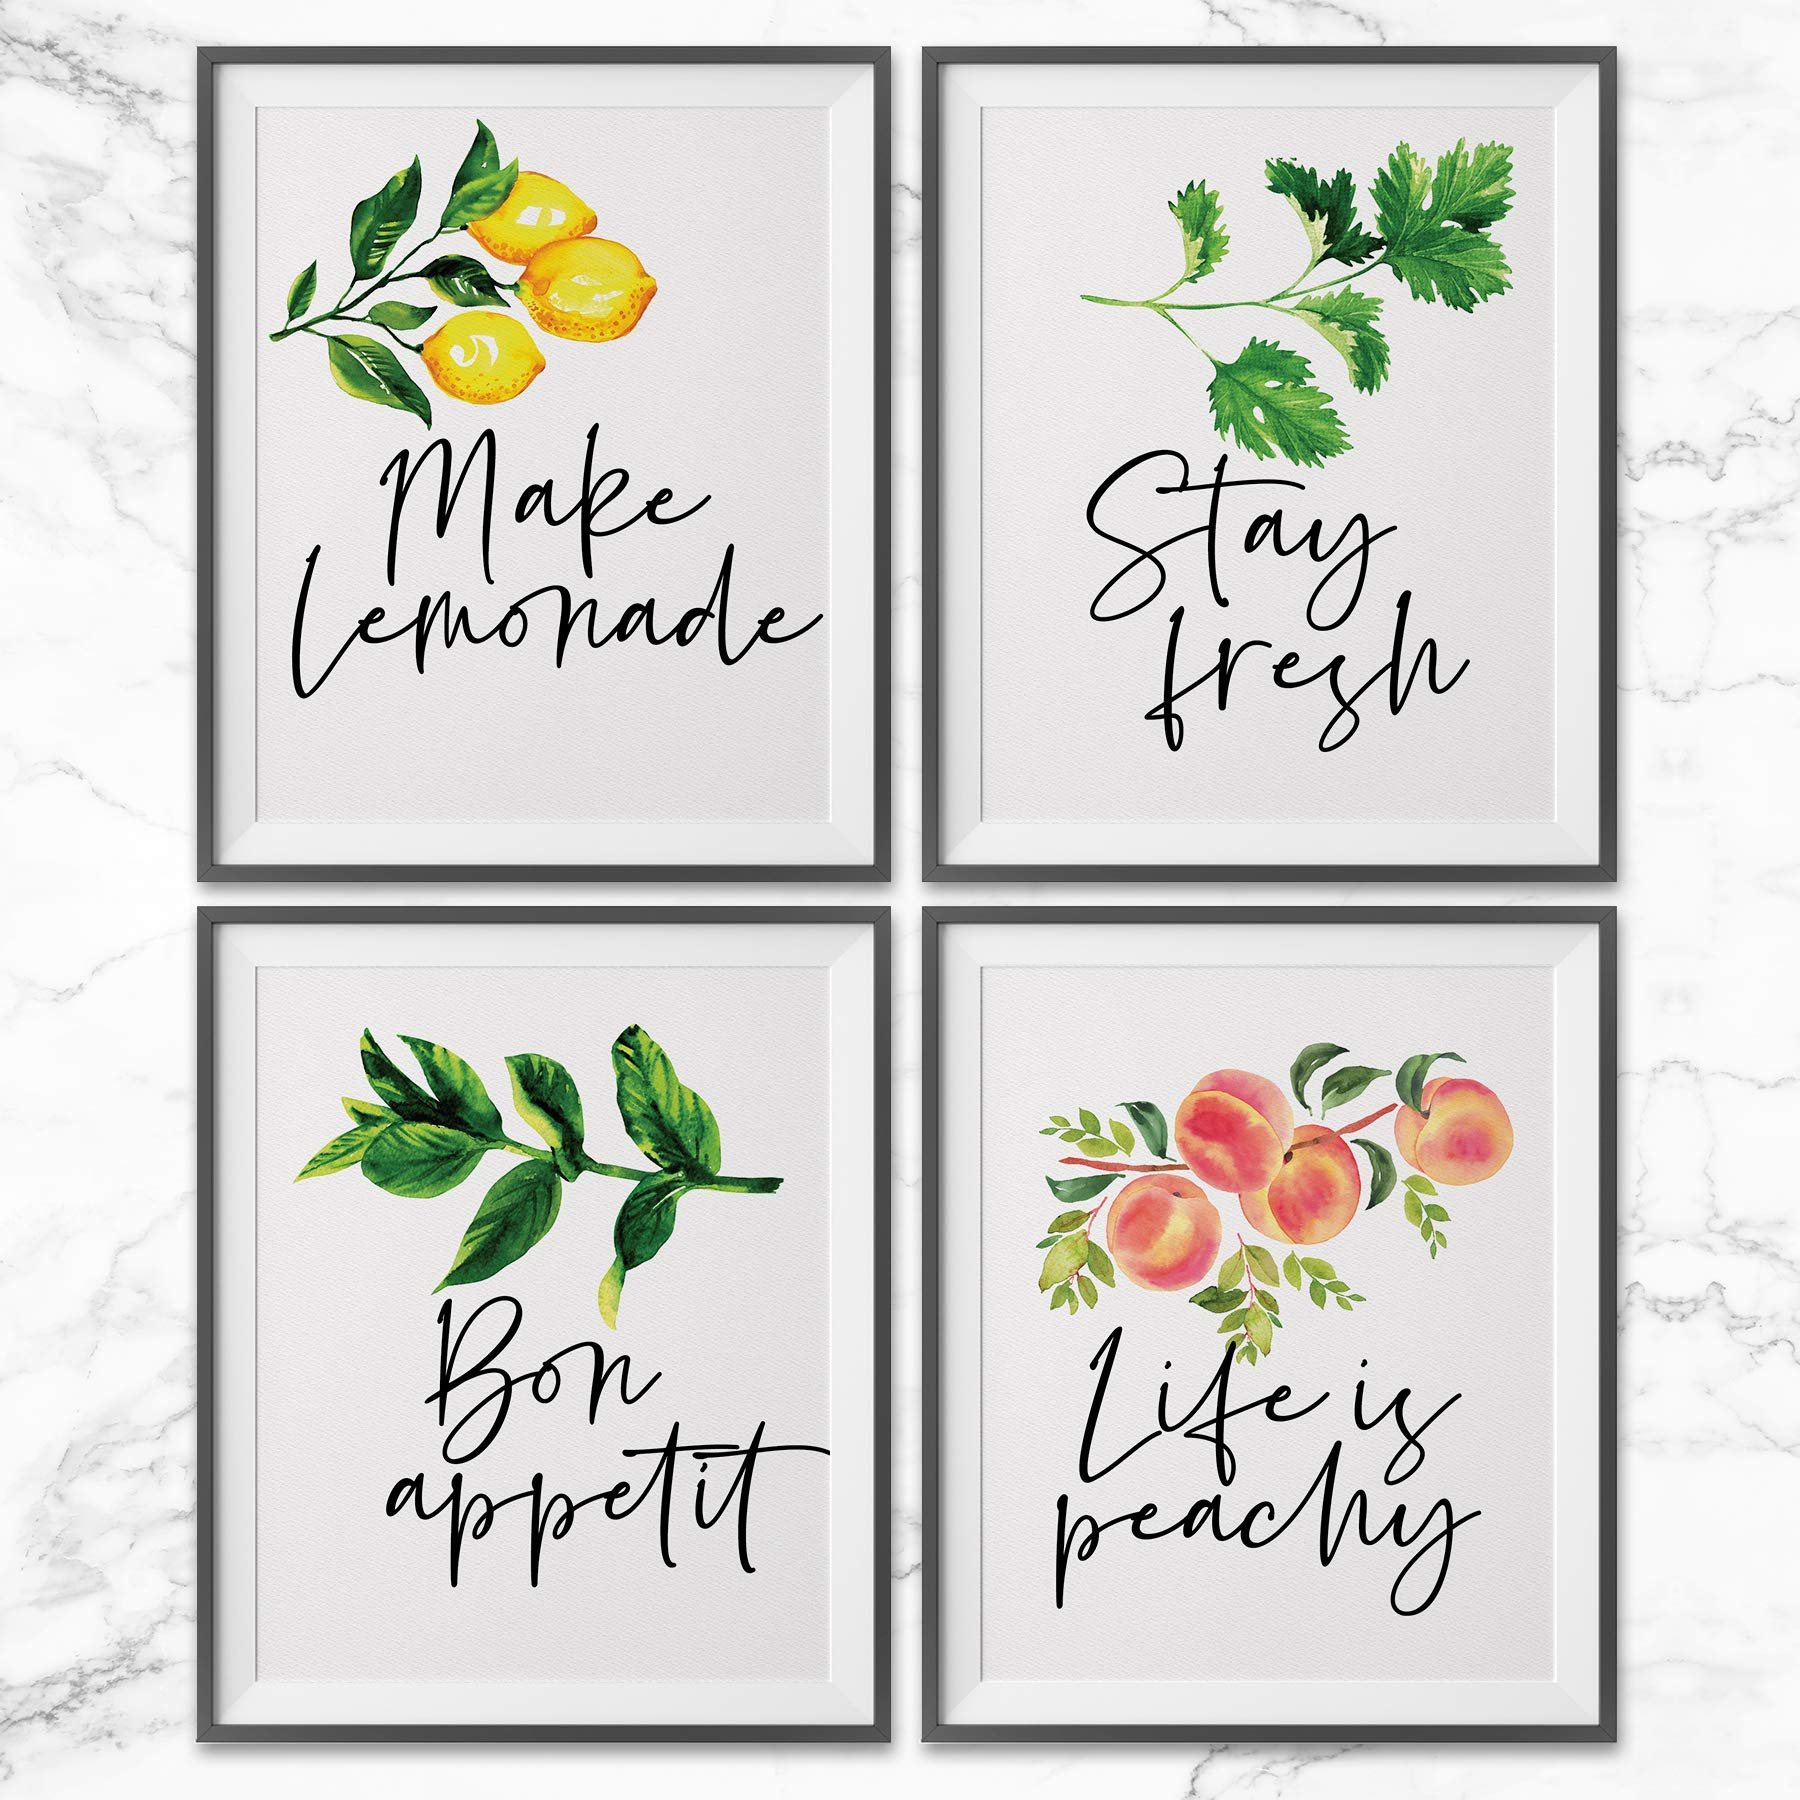 Pillow and Toast Kitchen Wall Decor Art Prints, Botanical Decorations Above Cabinets, Set of 4 Prints 8x10